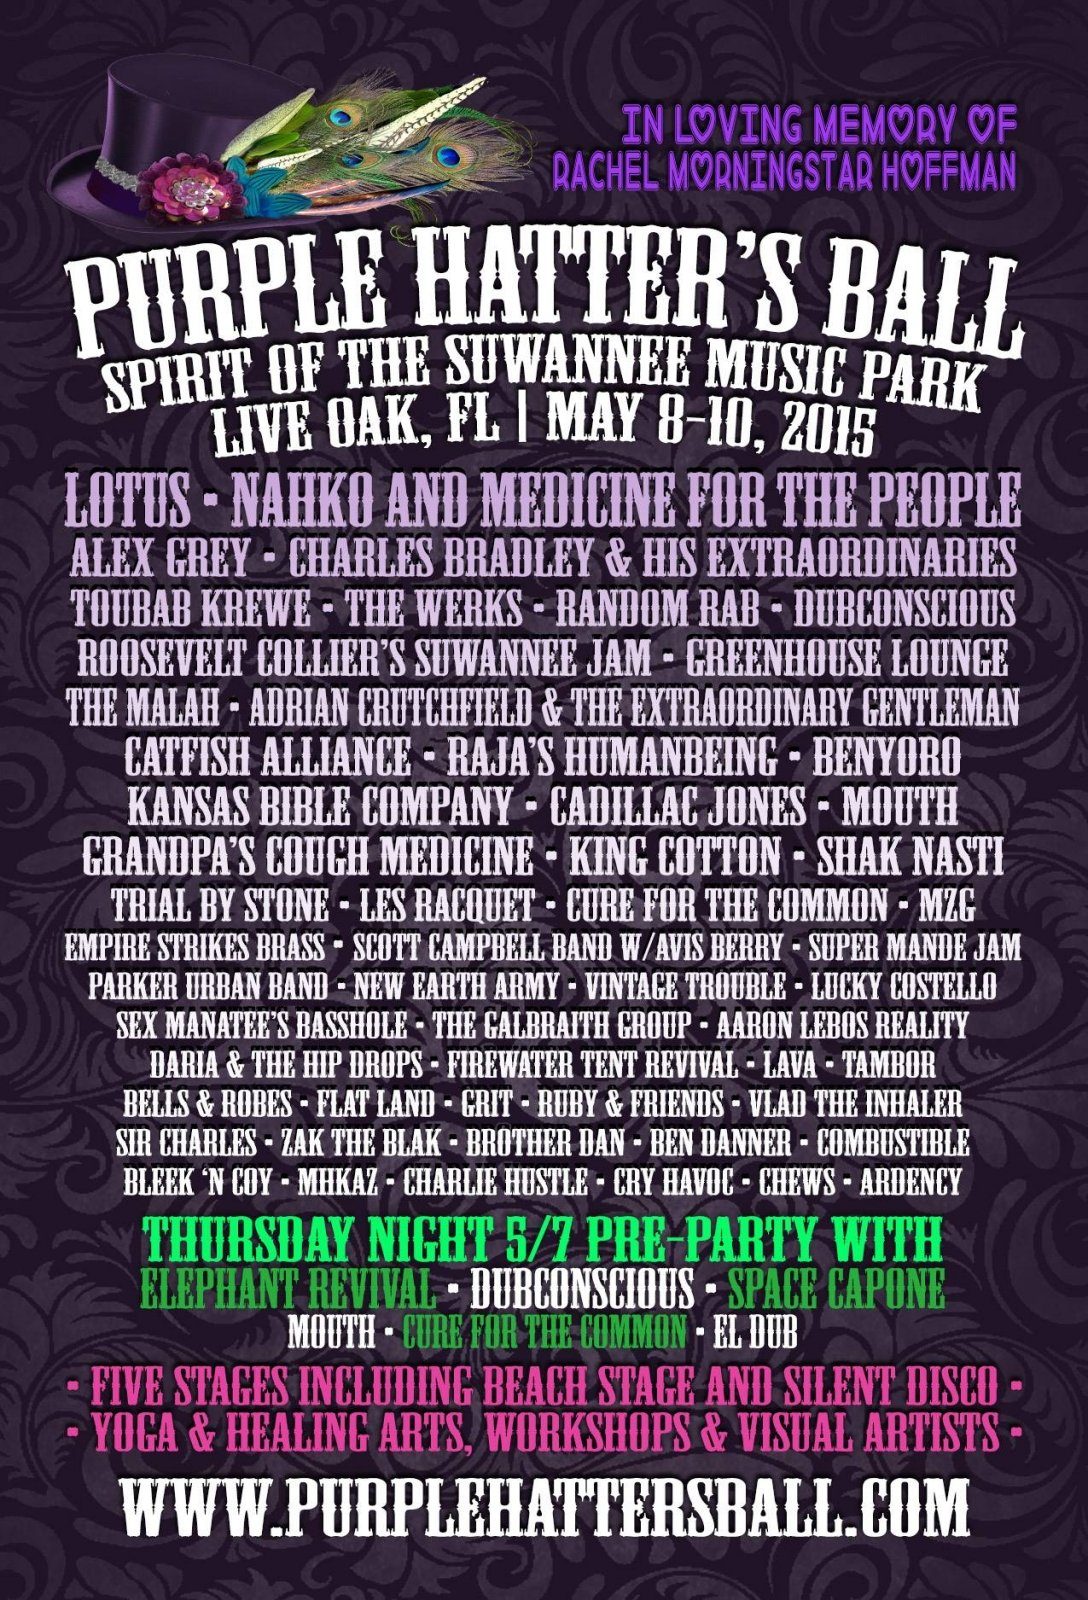 More than a Music Festival: A Purple Hatter's Ball 2015 Recap